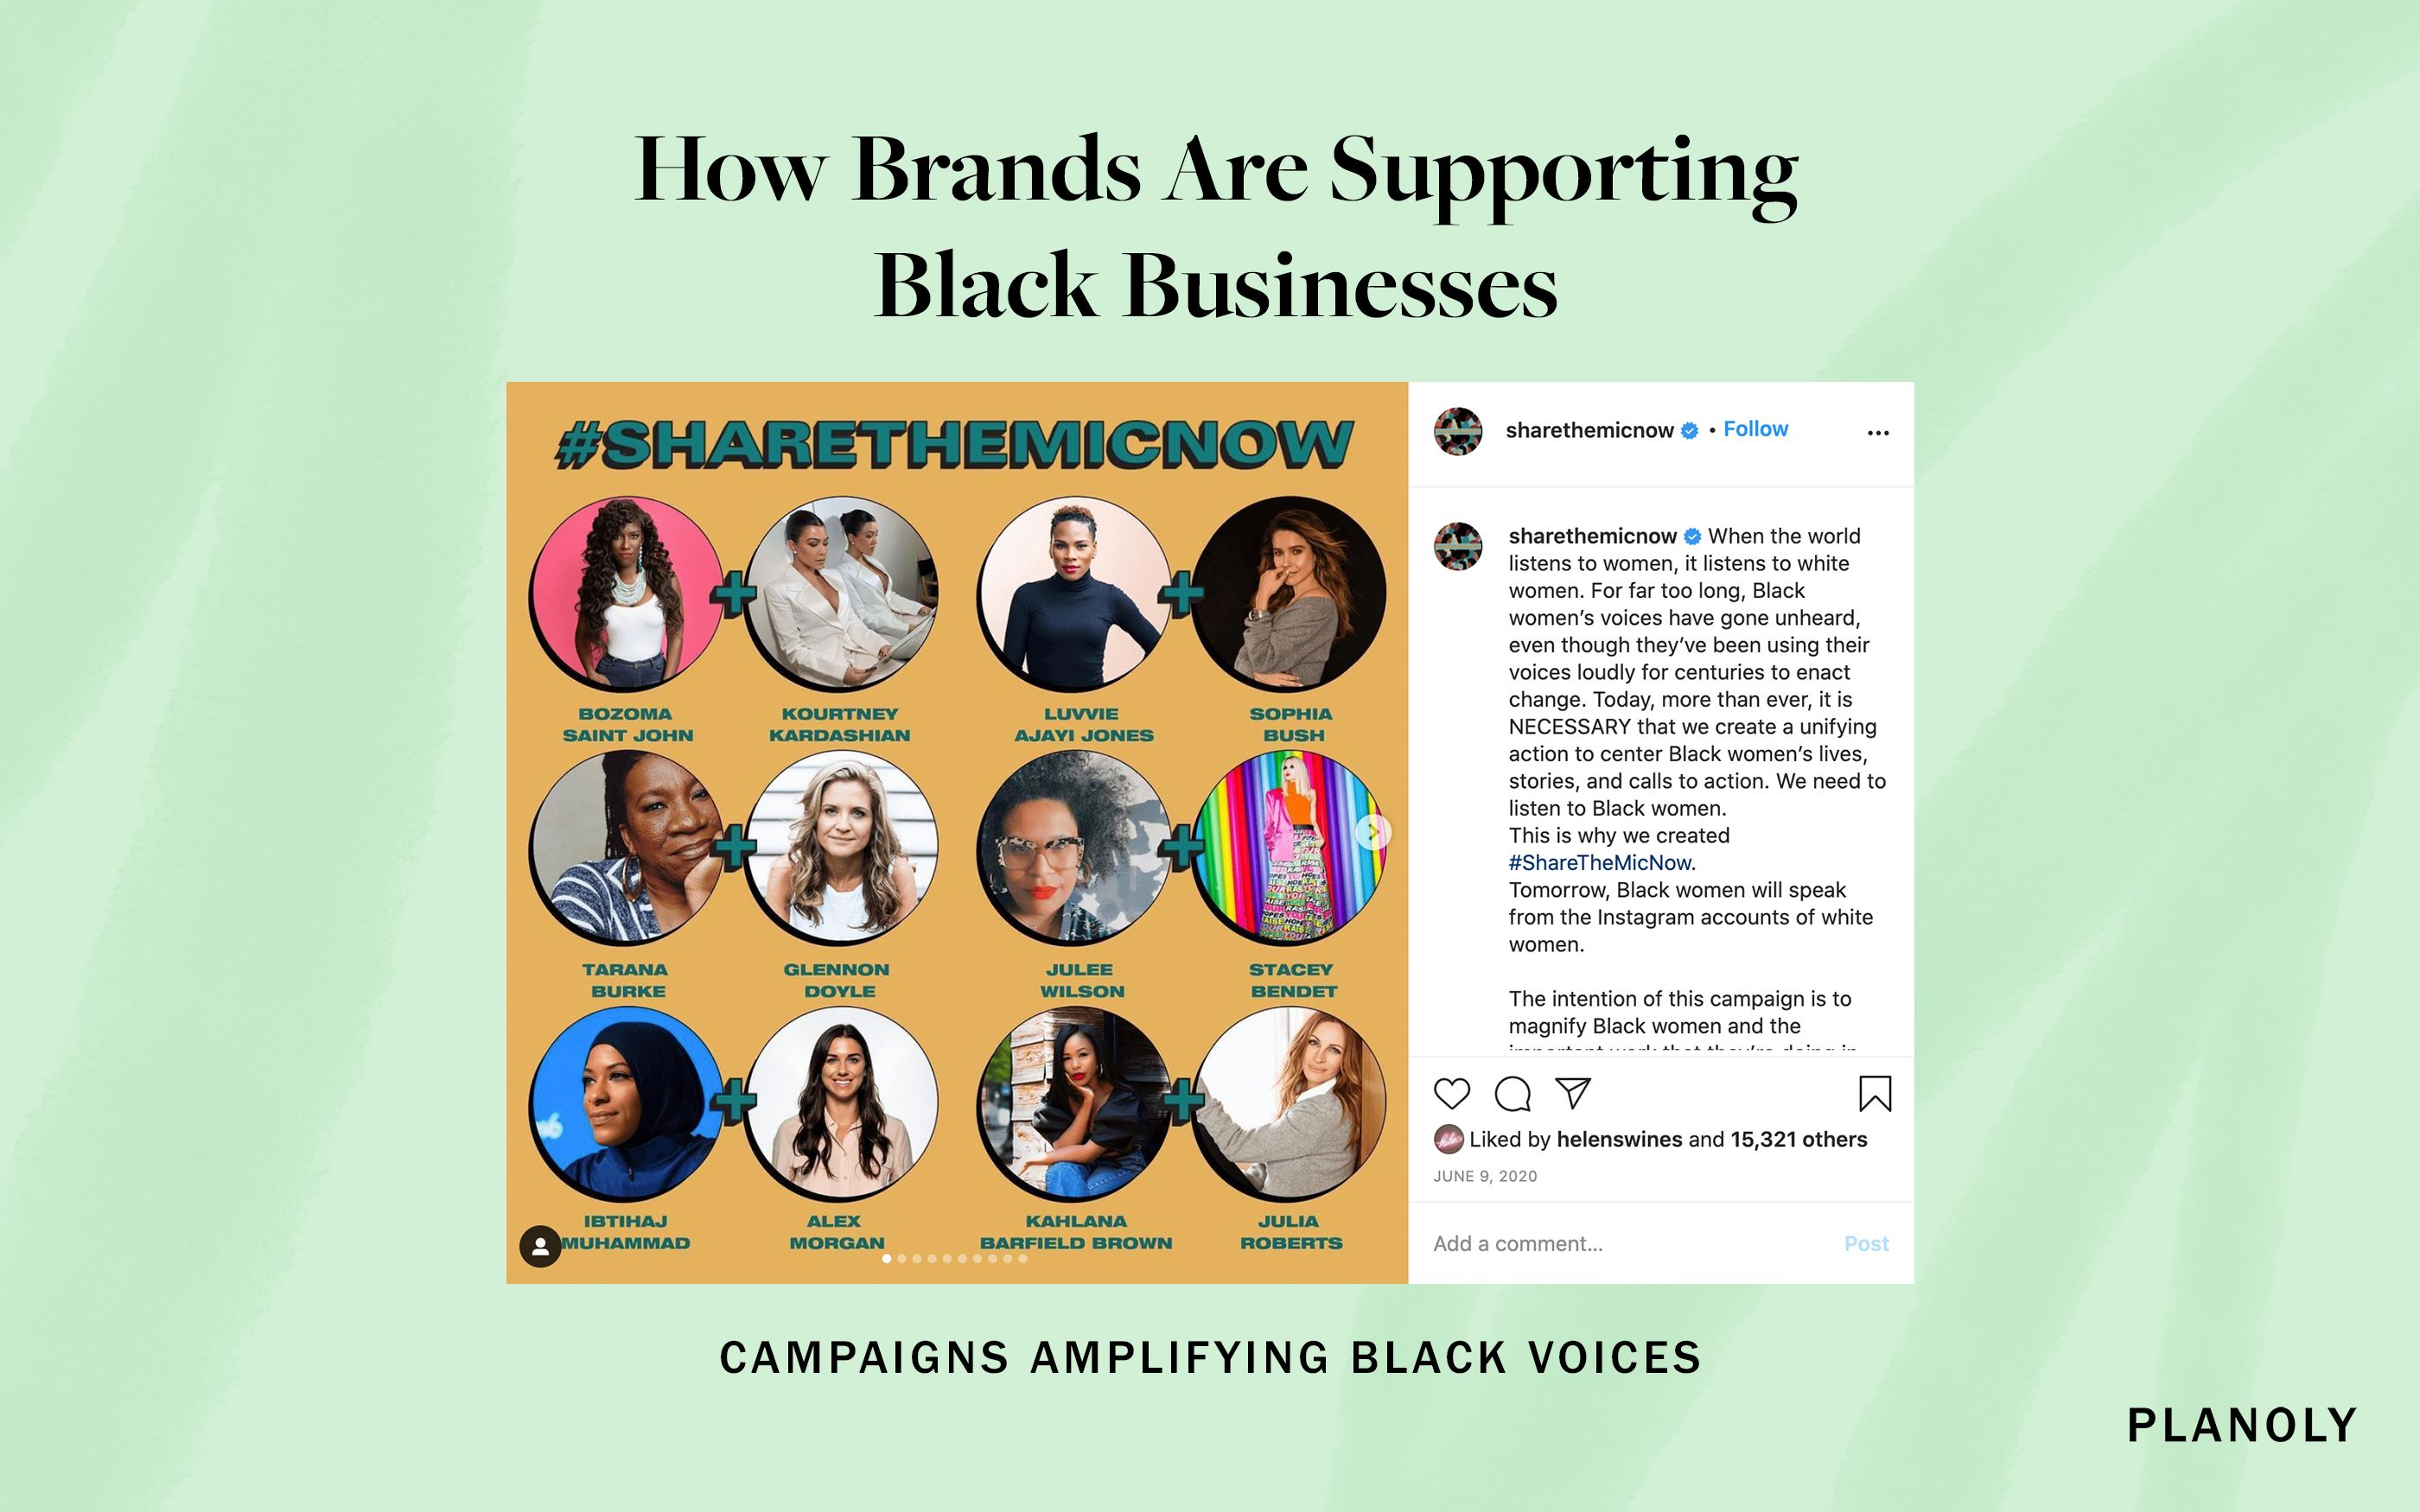 PLANOLY - Blog Post - How to Support Black Businesses - Image 2